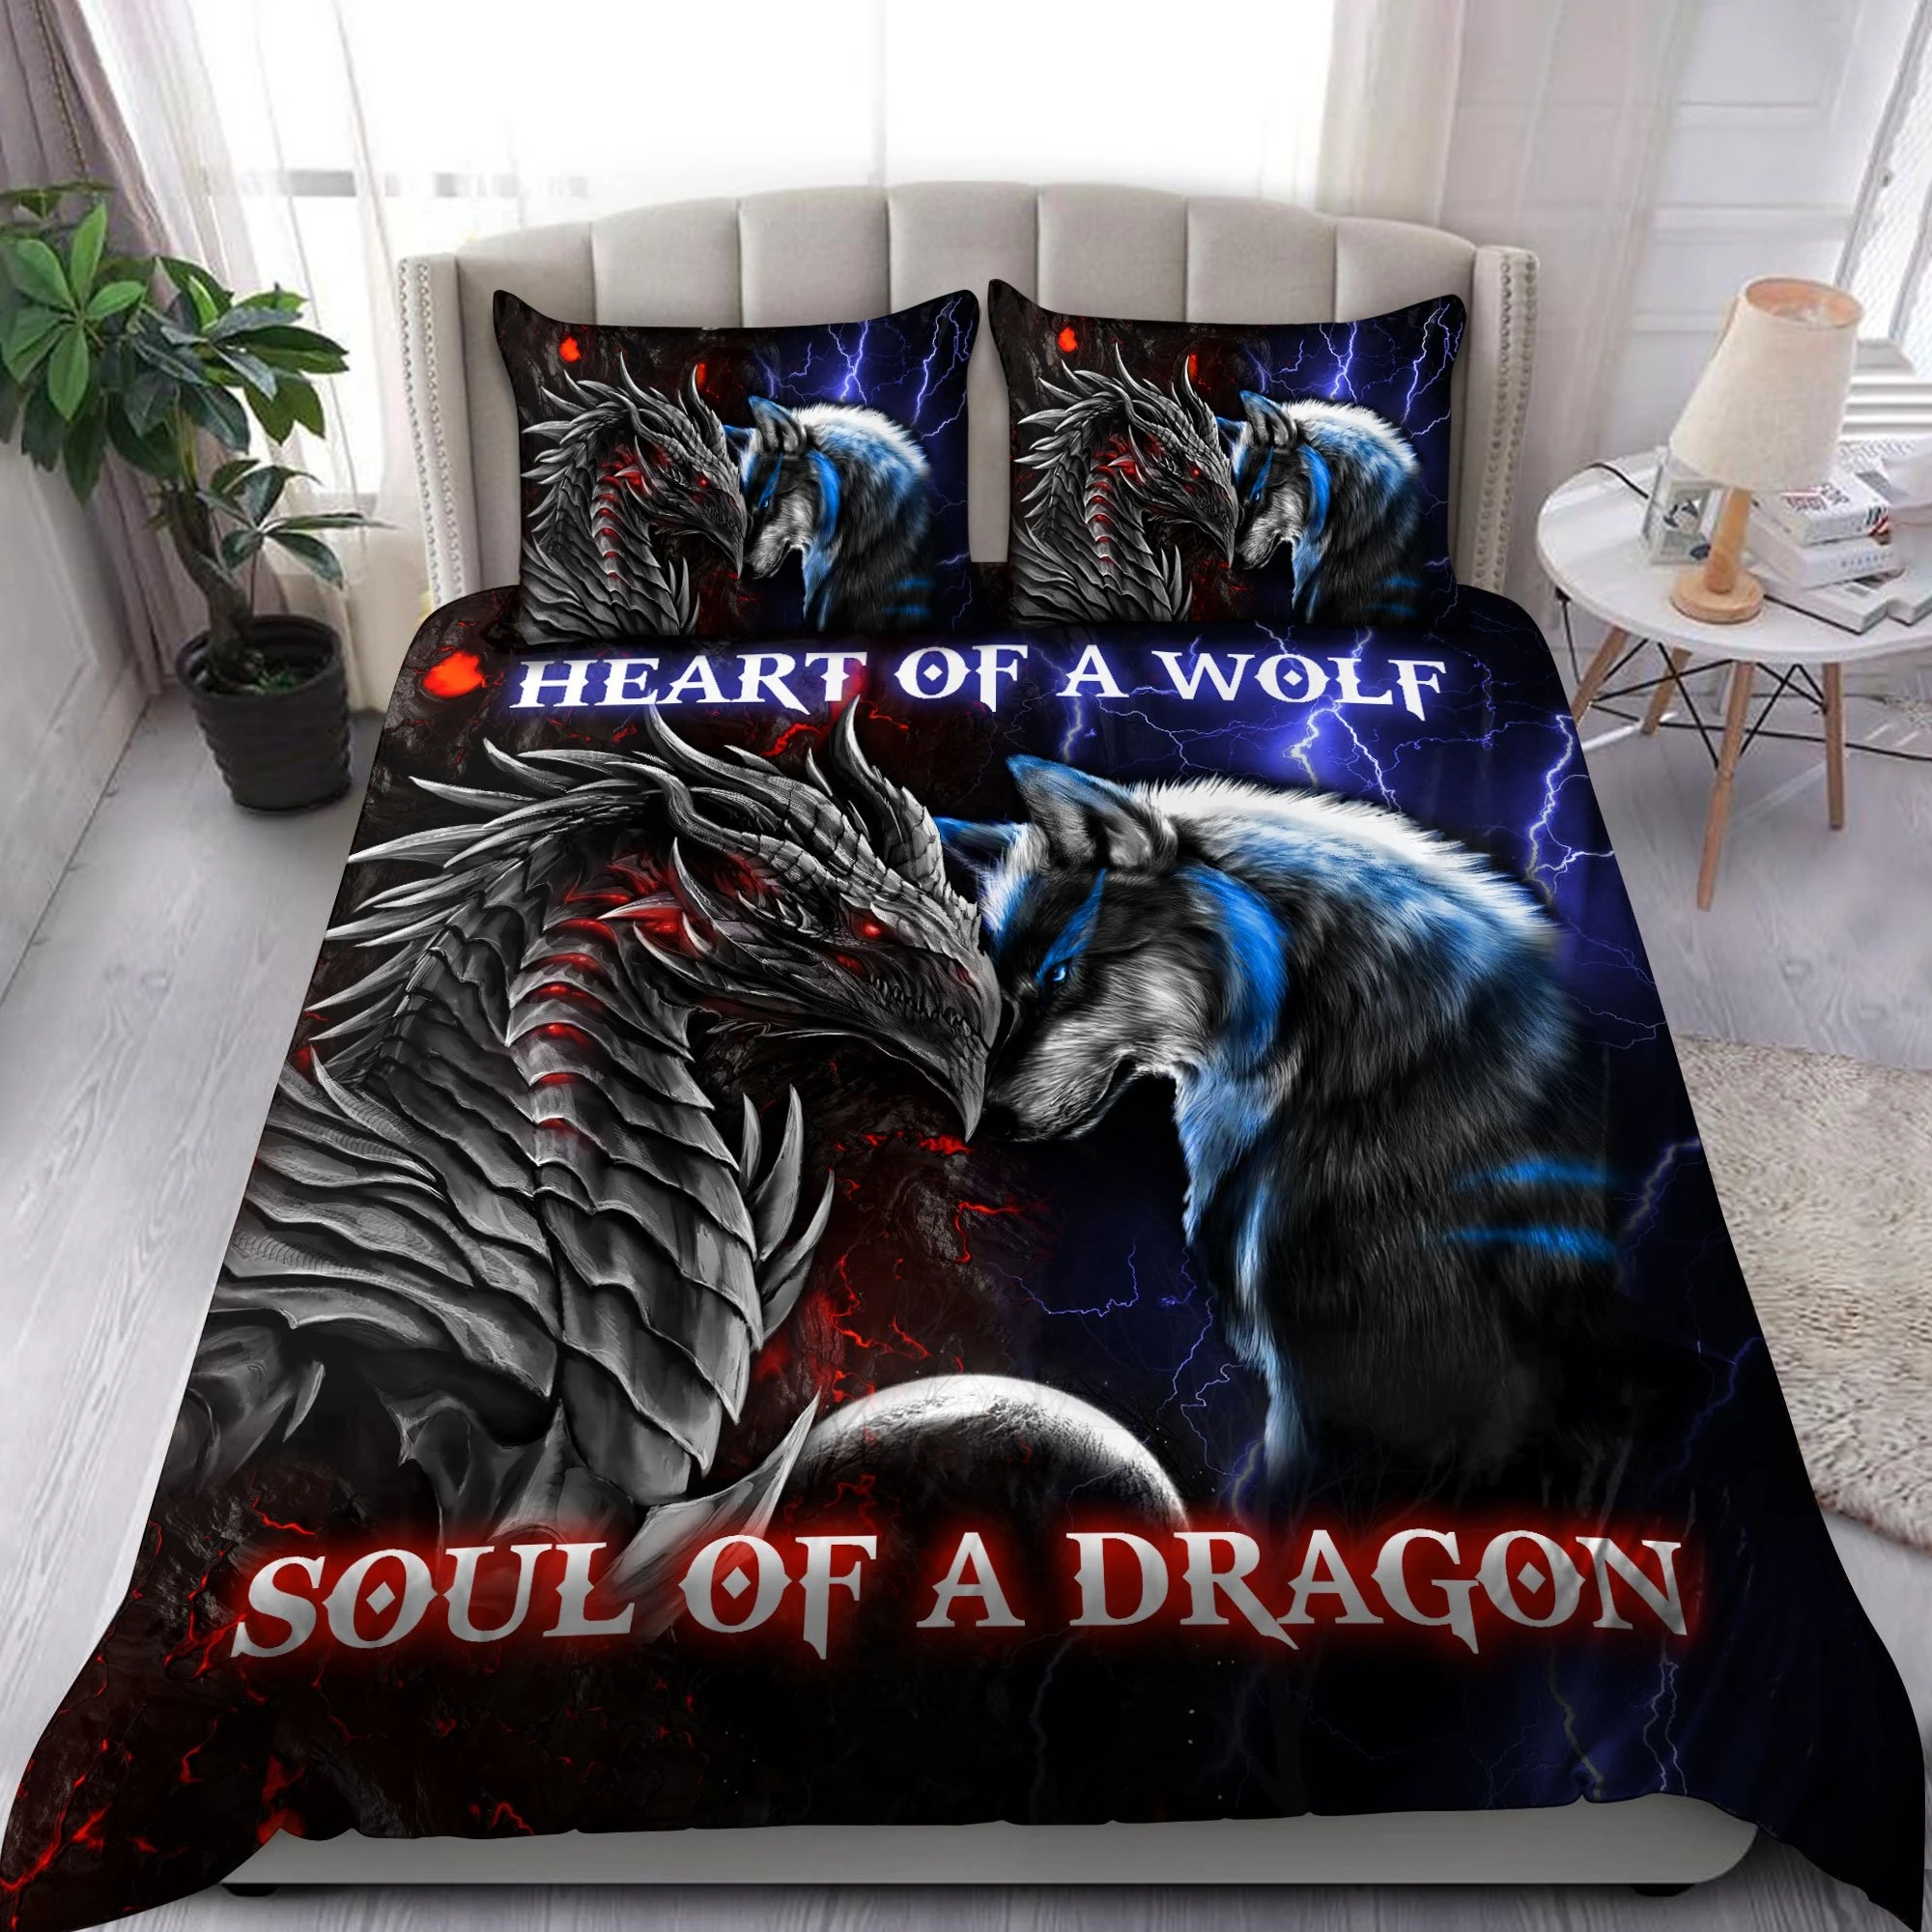 Heart of a wolf soul of a dragon bedding set 2